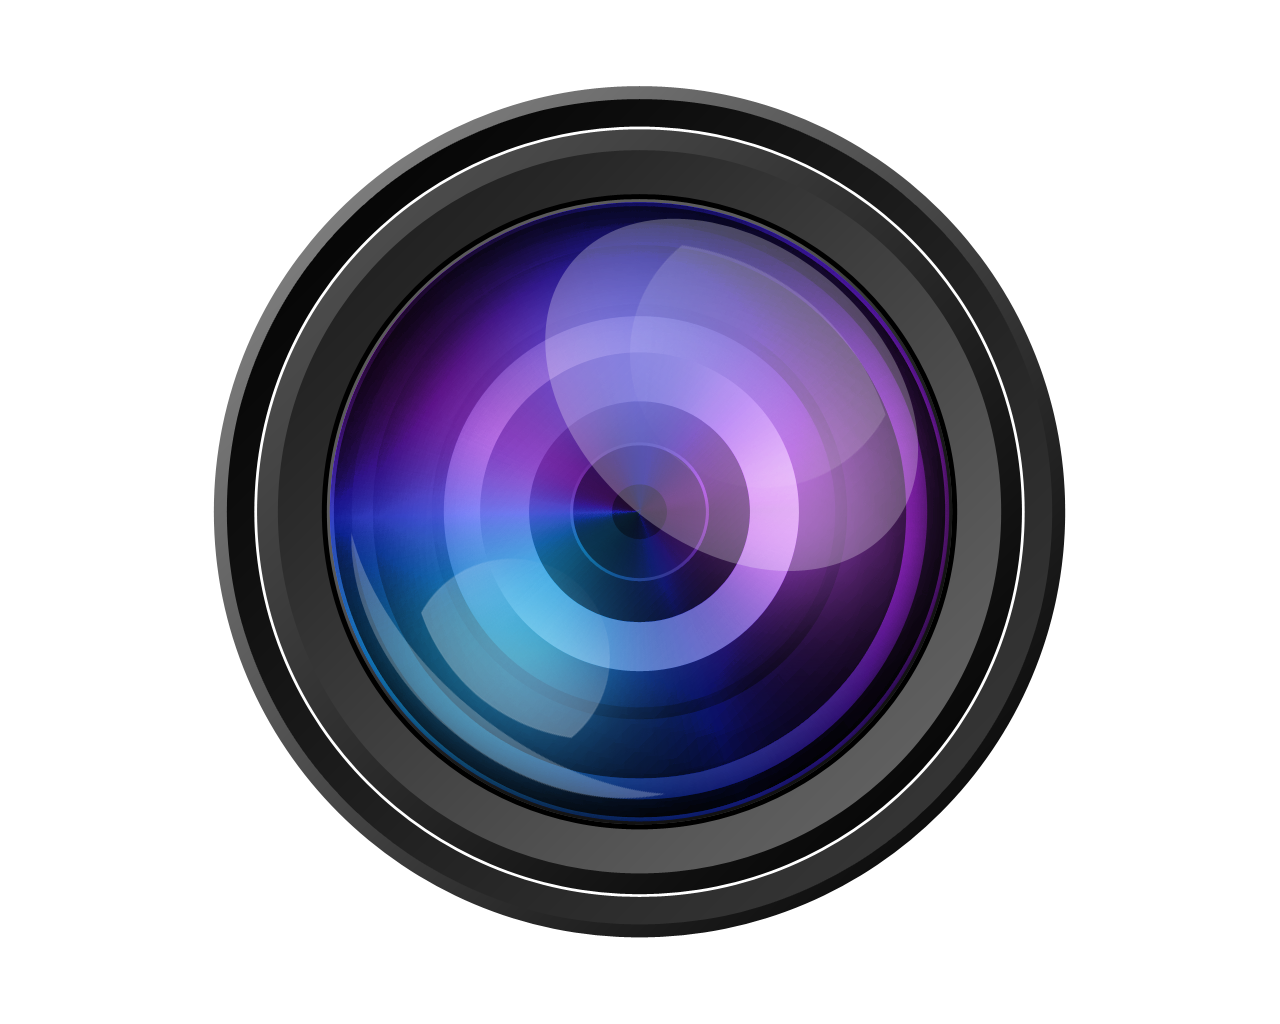 Photography lens png. Download clipart free icons